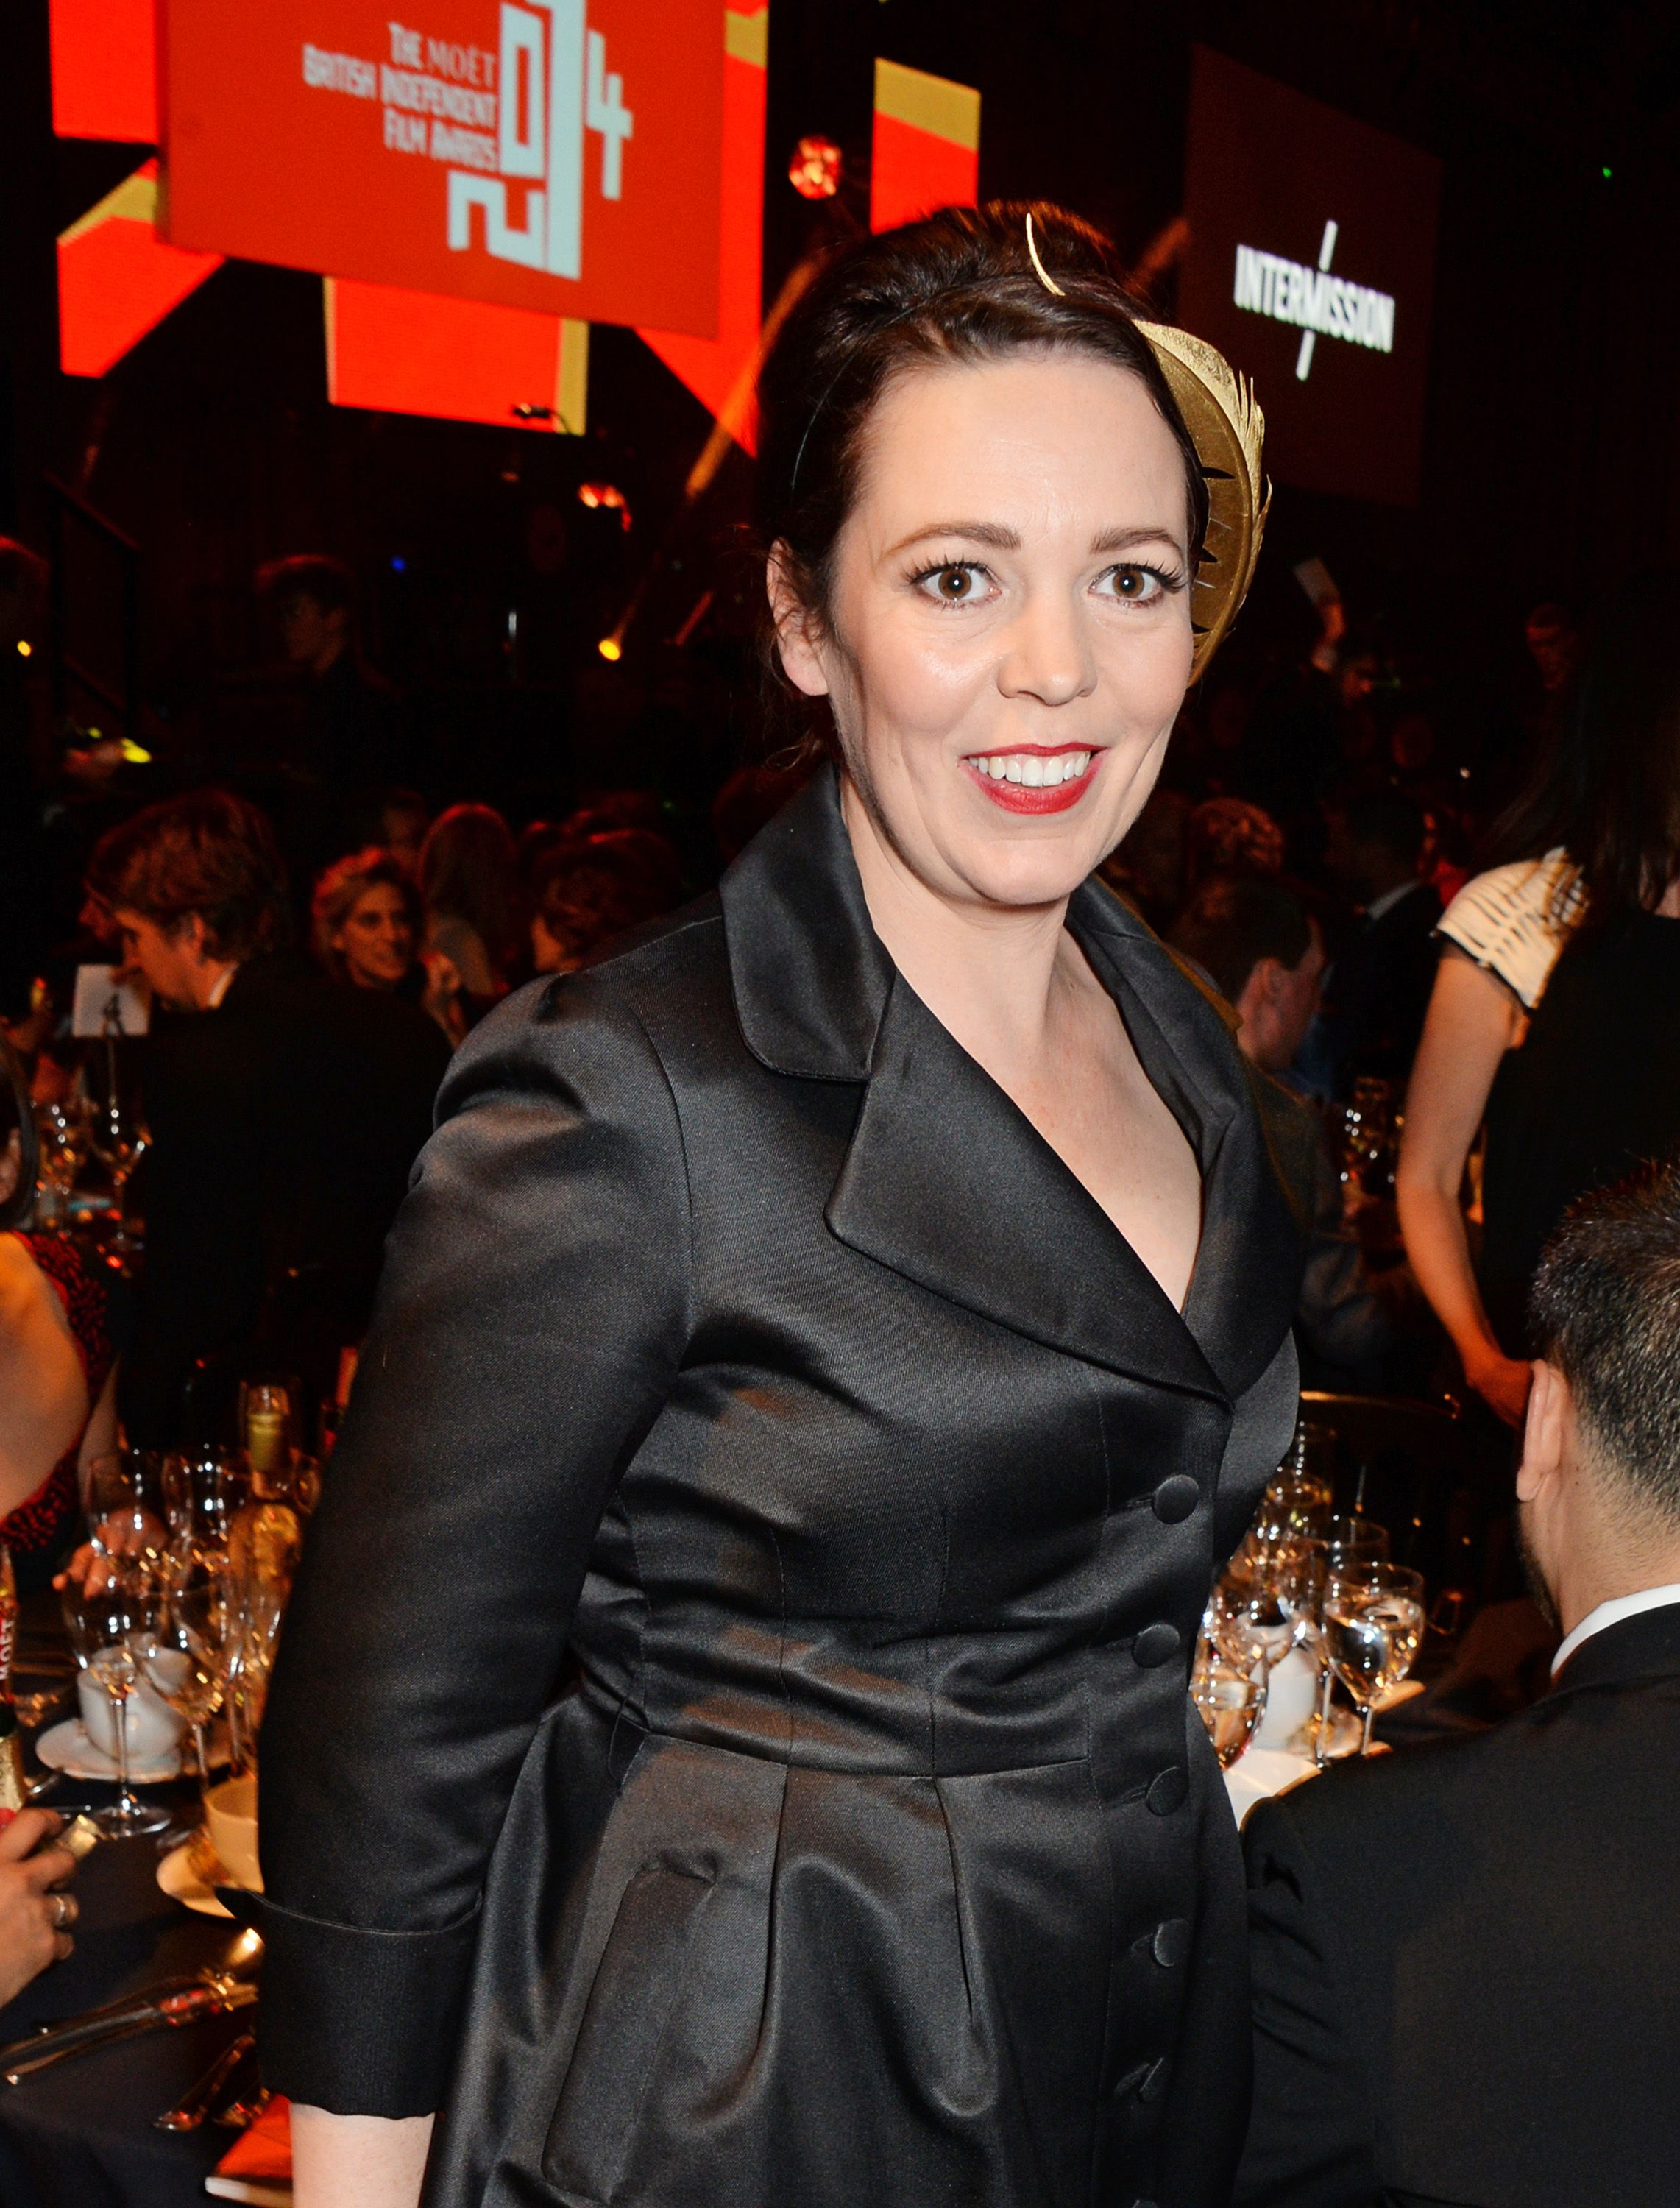 Forum on this topic: Anna Cropper (1938?007), olivia-colman-born-1974/